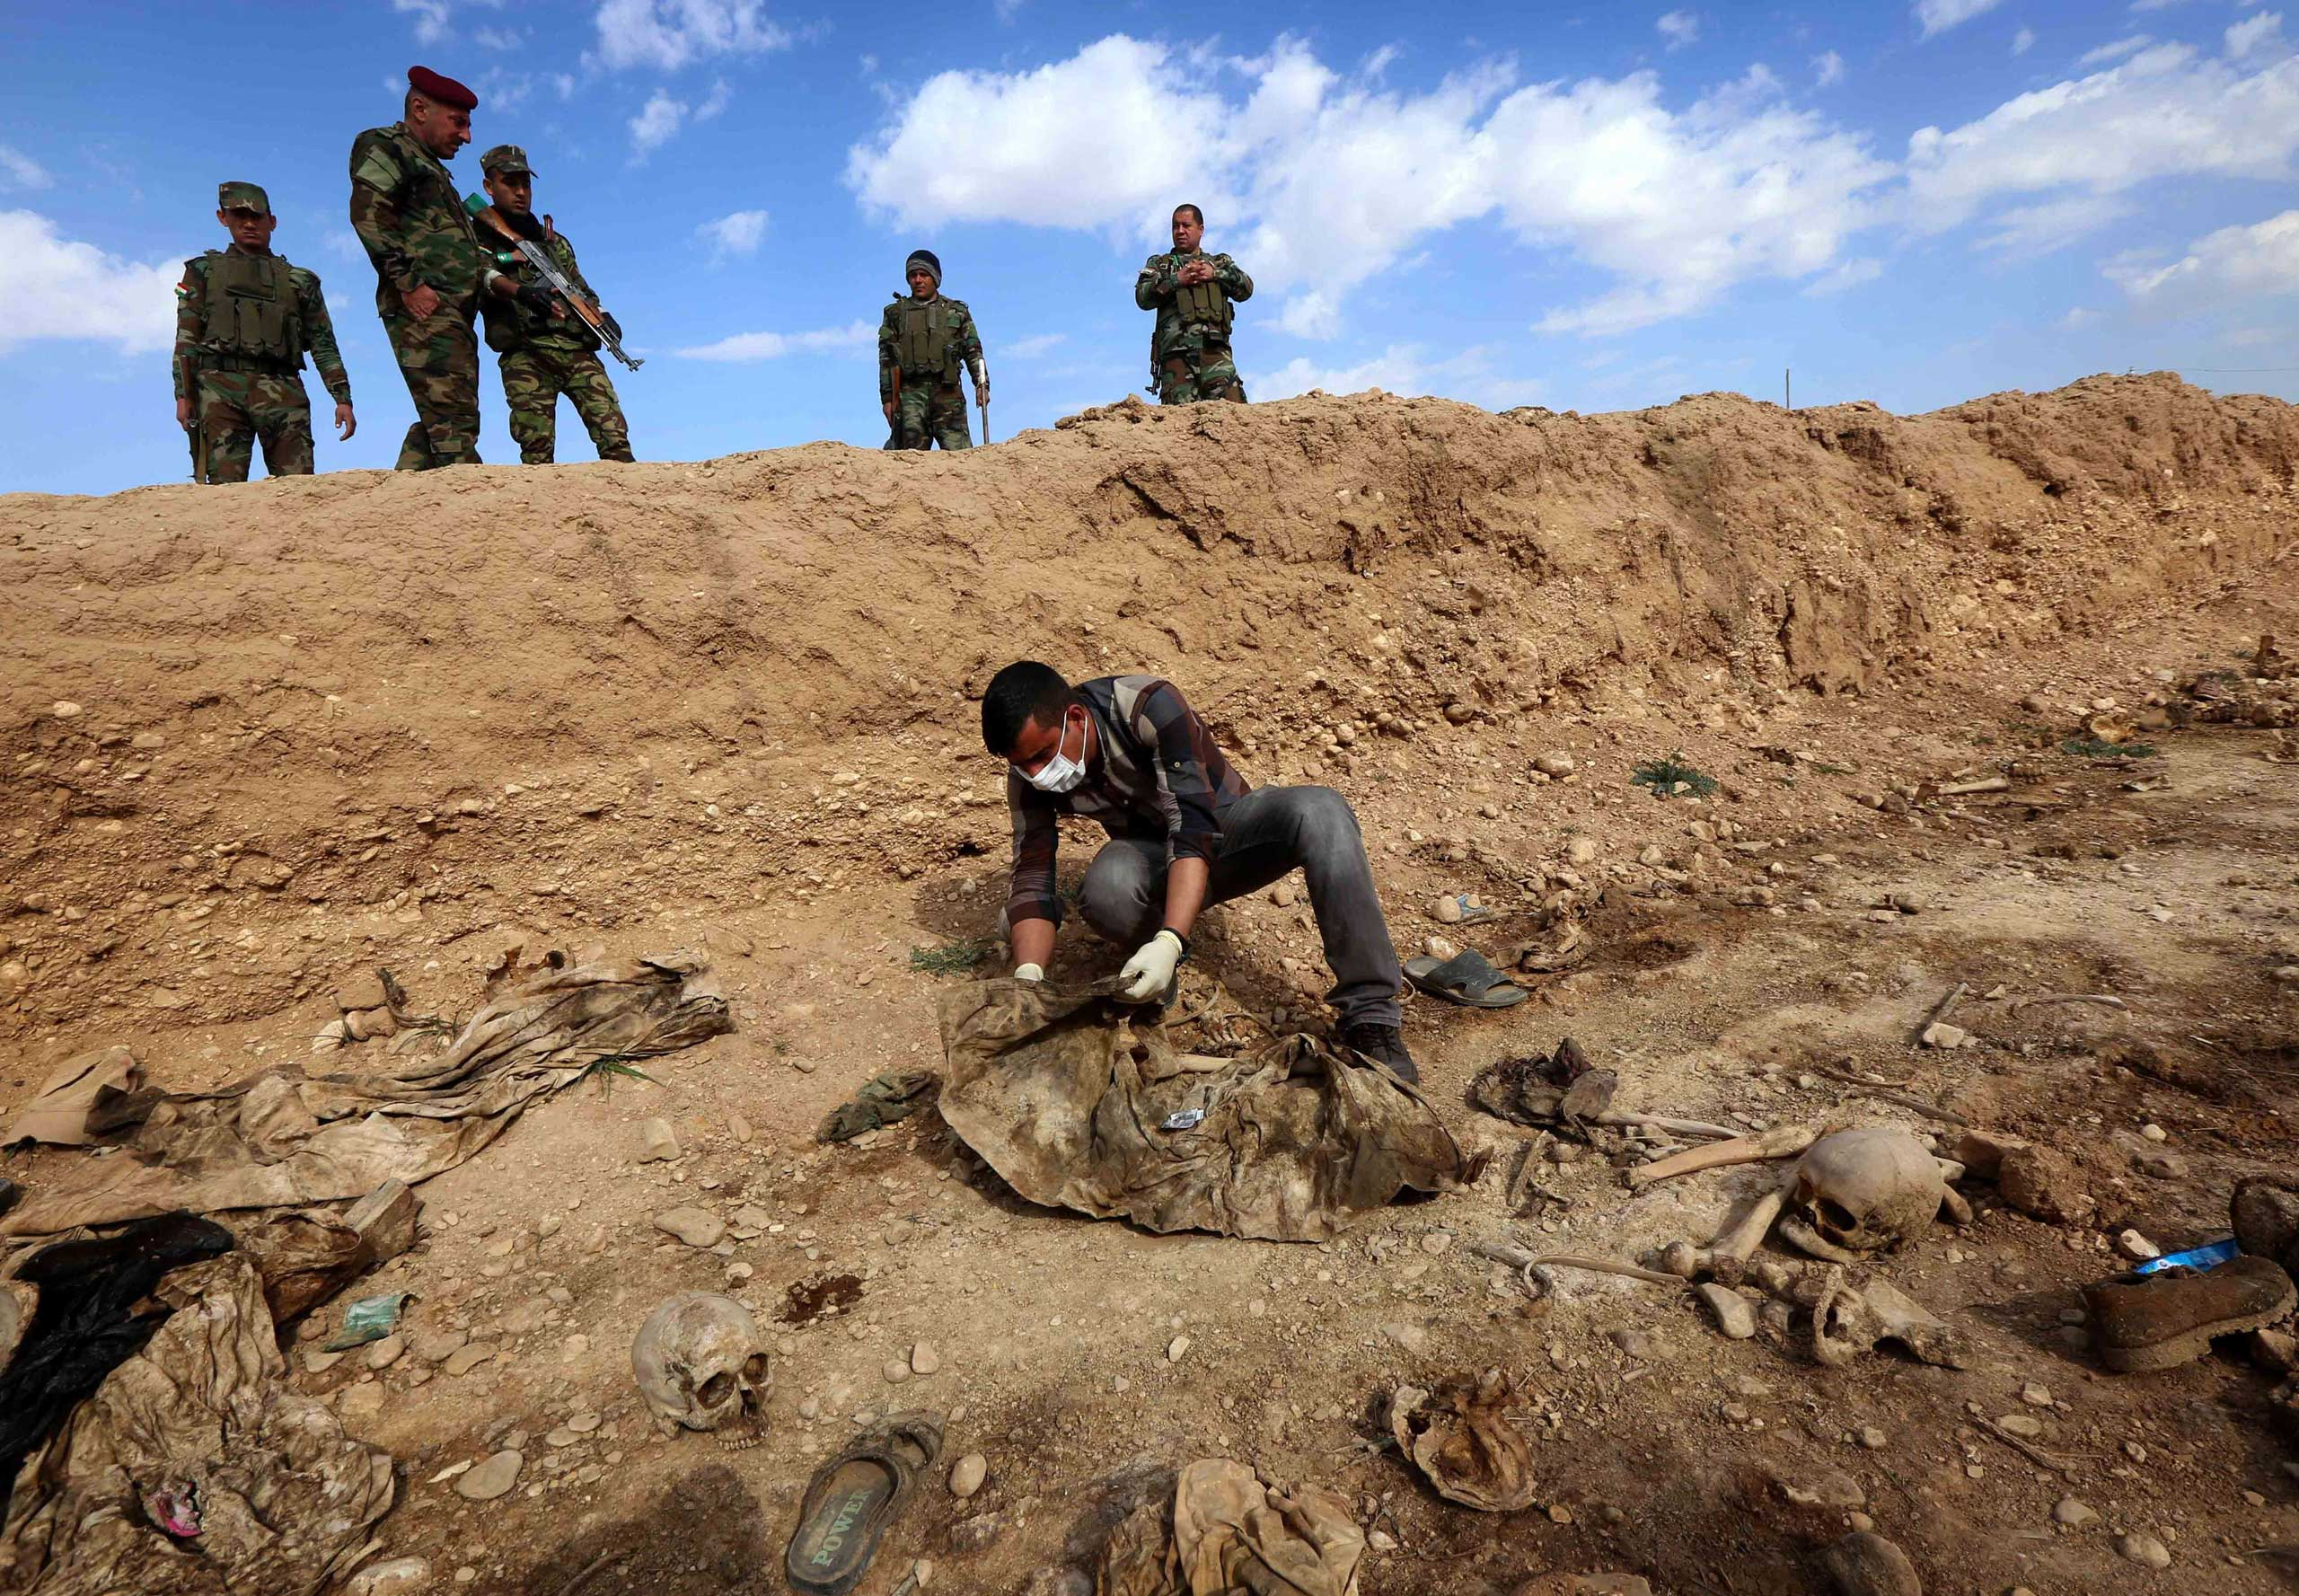 Feb. 3, 2015. An Iraqi man inspects the remains of members of the Yazidi minority killed by ISIS jihadist group after Kurdish forces discovered a mass grave near the village of Sinuni, in the northwestern Sinjar area. The grave, containing the remains of about 25 people, was found during a search for explosives that ISIS often leaves behind, posing a threat to security forces and civilians even after they withdraw.